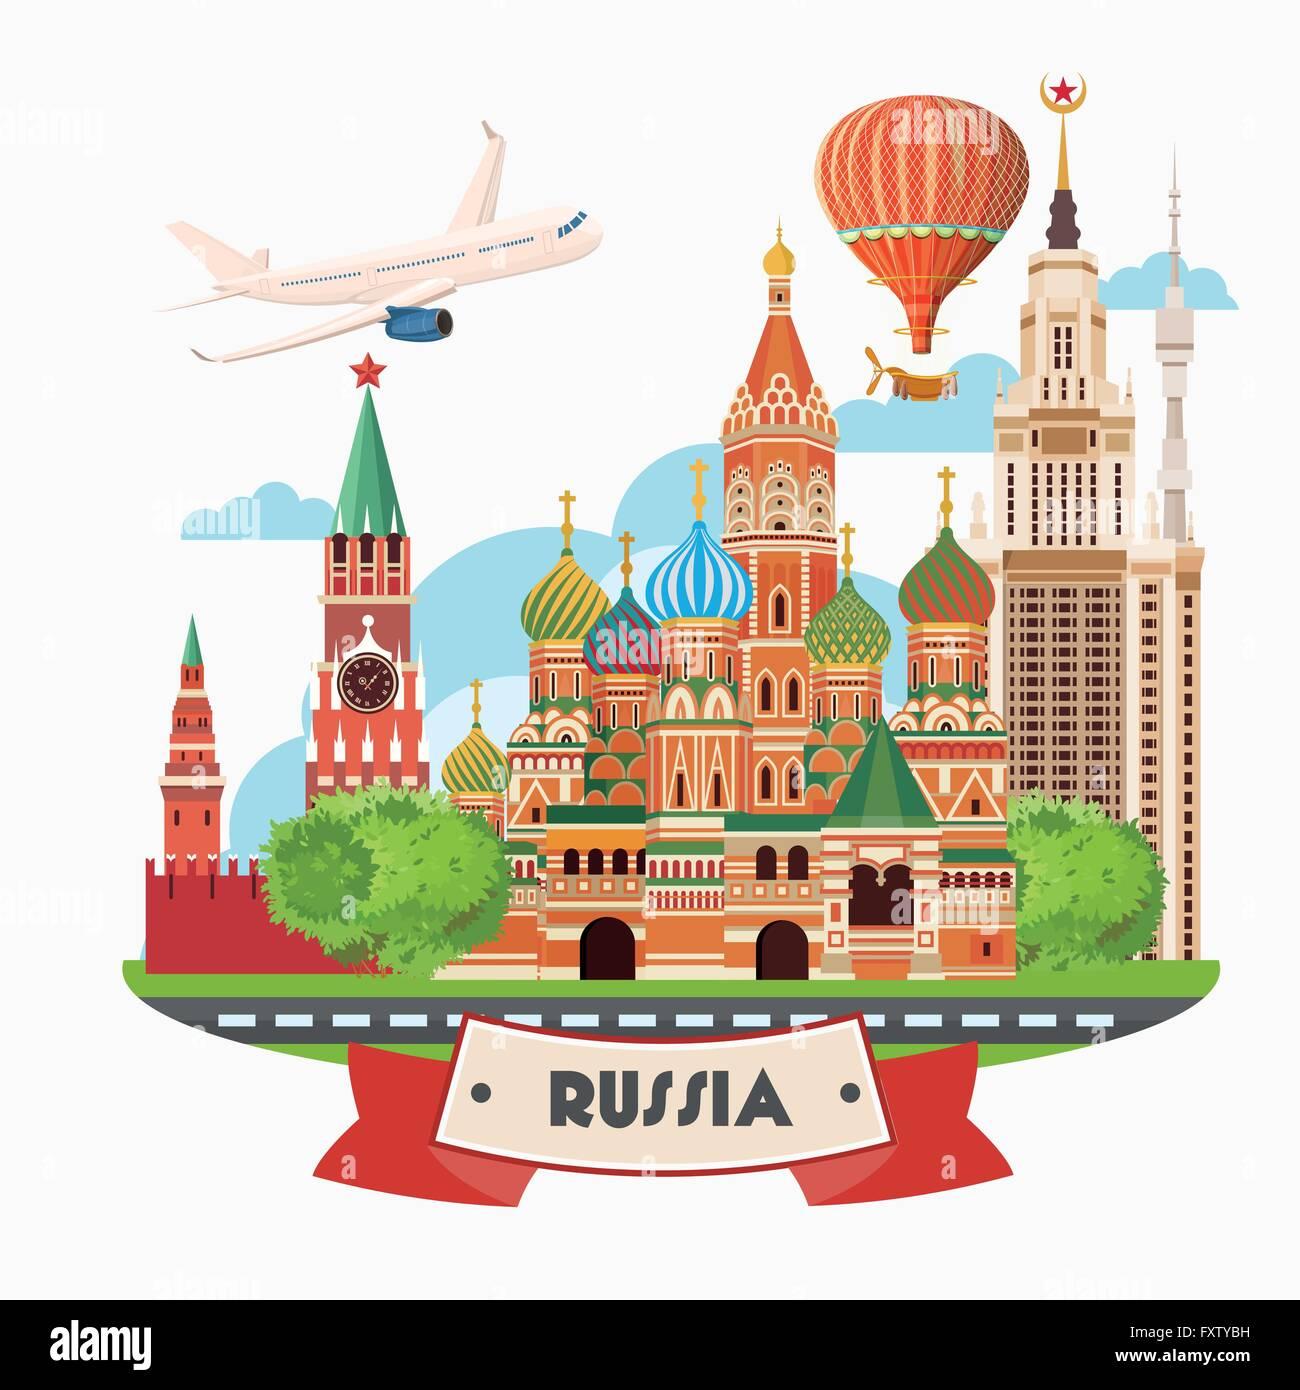 Russia Vector Poster. Russian Background With City